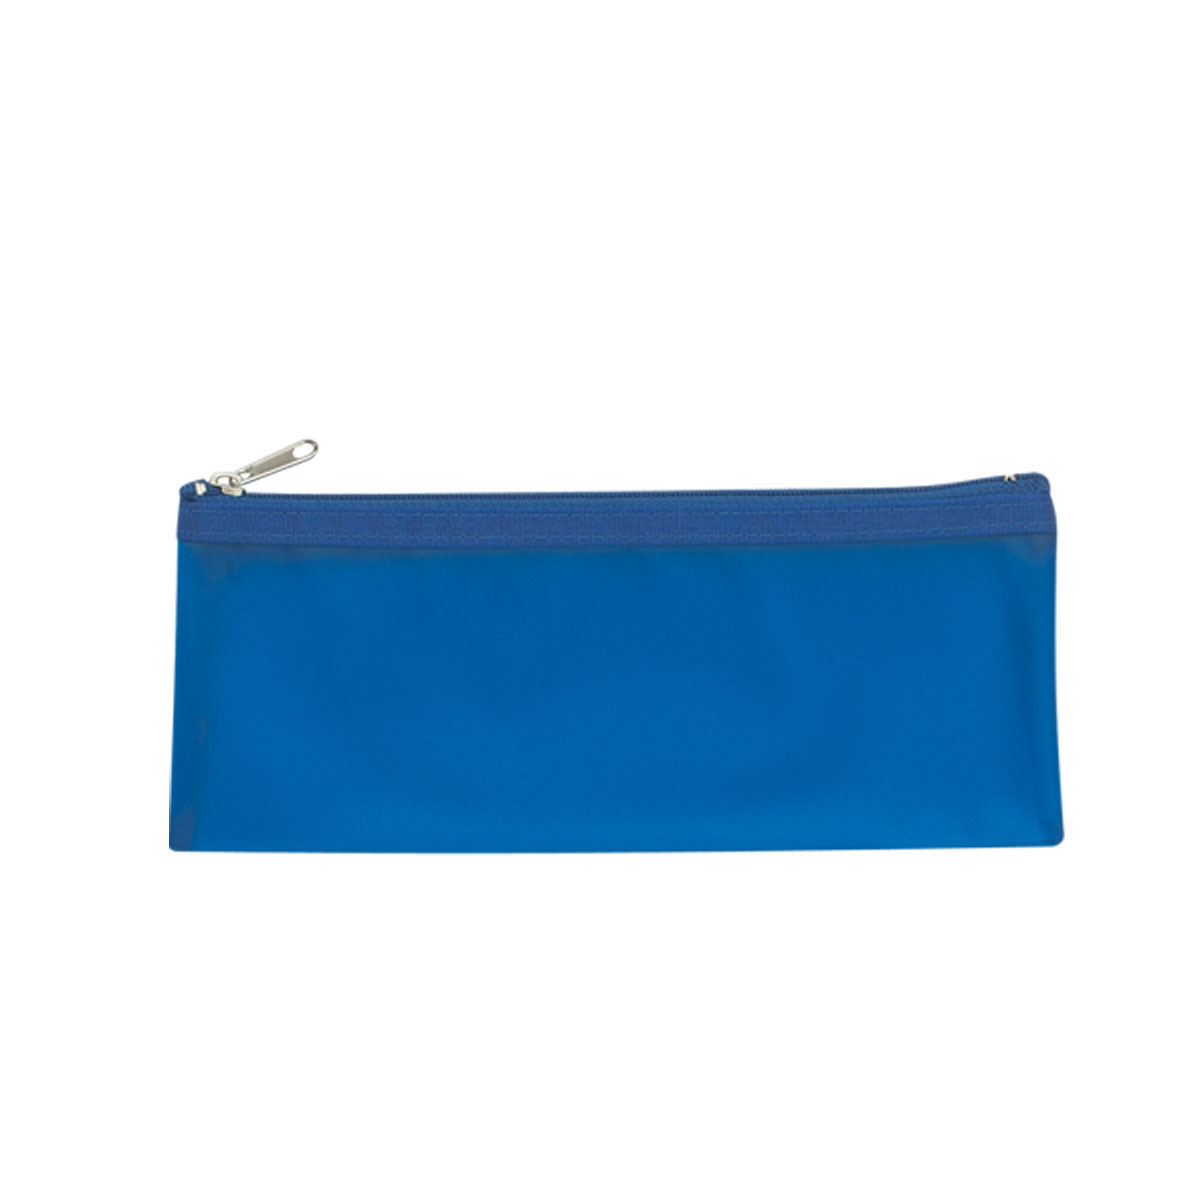 Blue Zippered Pencil Case